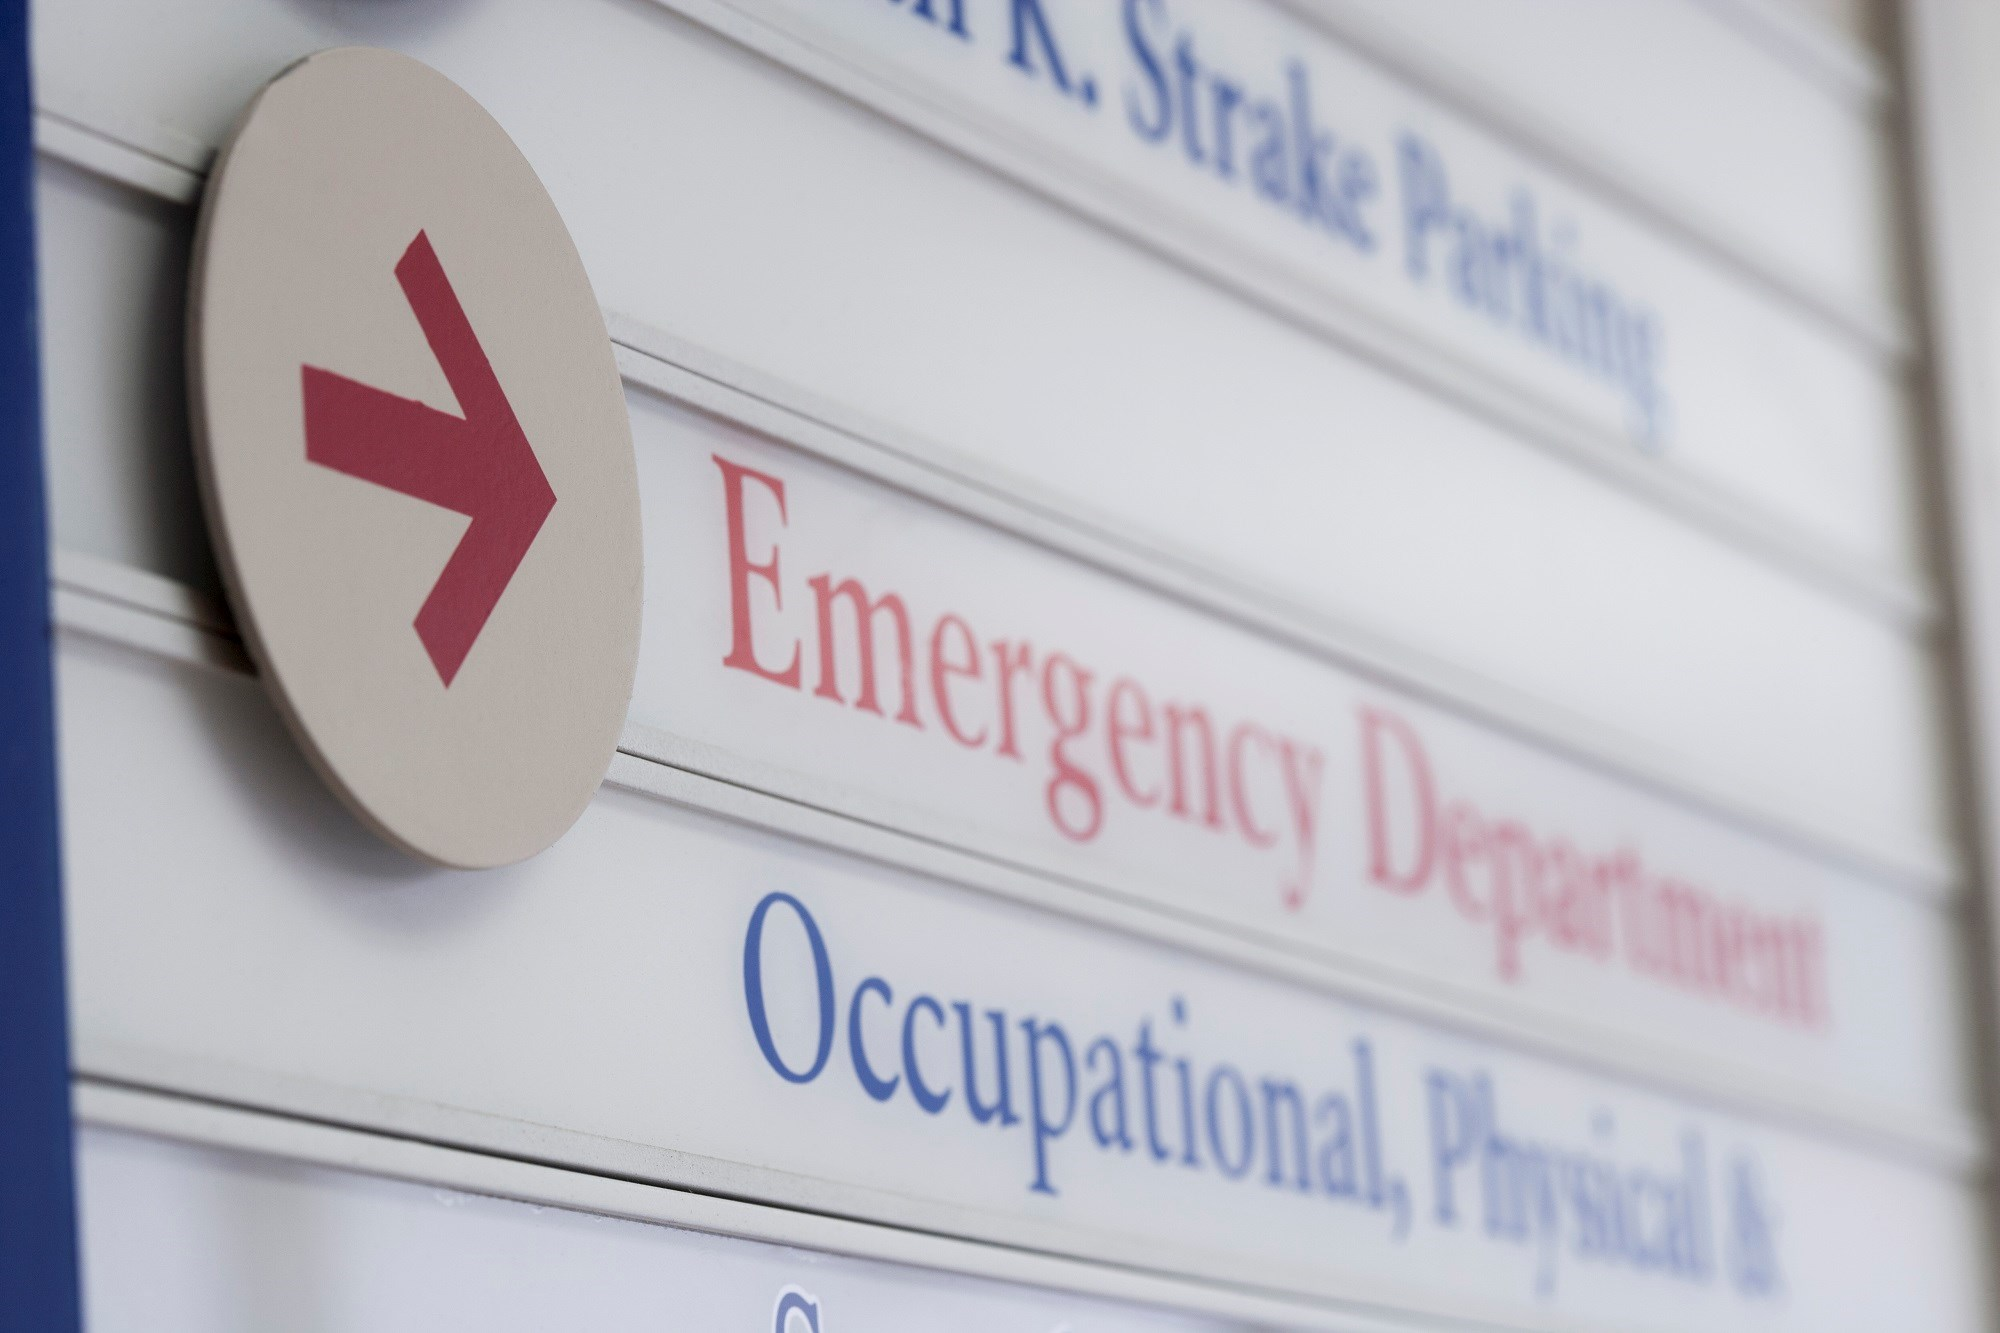 Emergency Department Overcrowding Could Be Reduced By Expanding Pharmacist Role